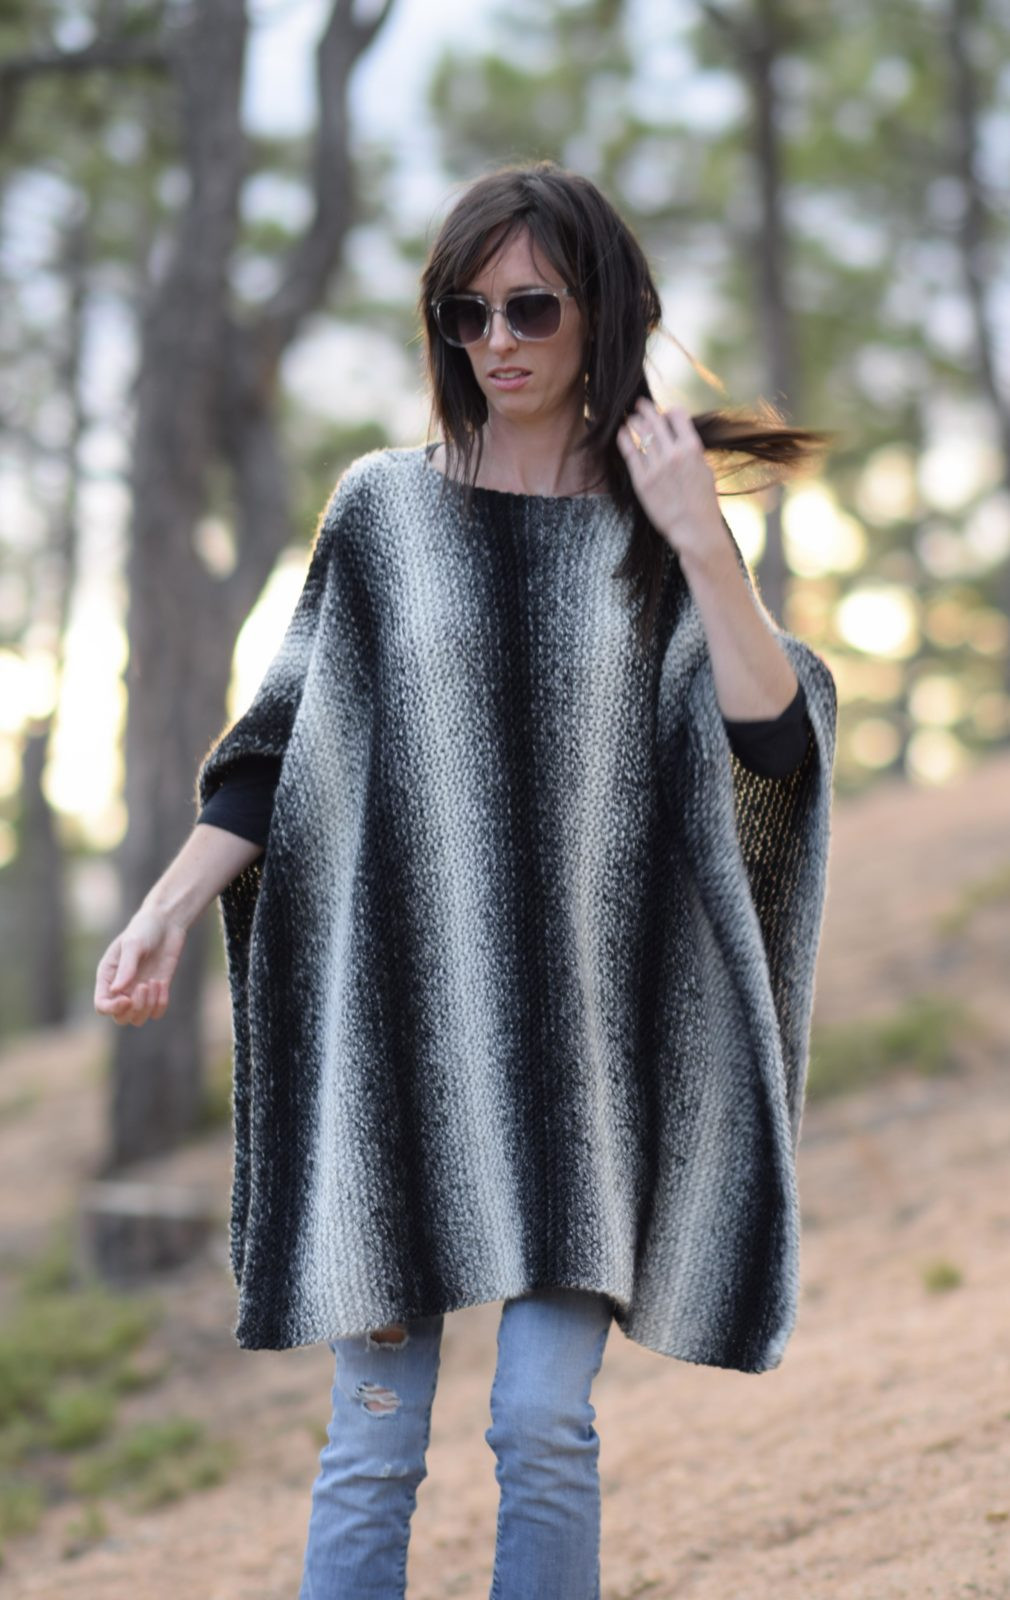 Unique aspen Relaxed Knit Poncho Pattern – Mama In A Stitch Free Poncho Knitting Patterns Of Incredible 43 Models Free Poncho Knitting Patterns